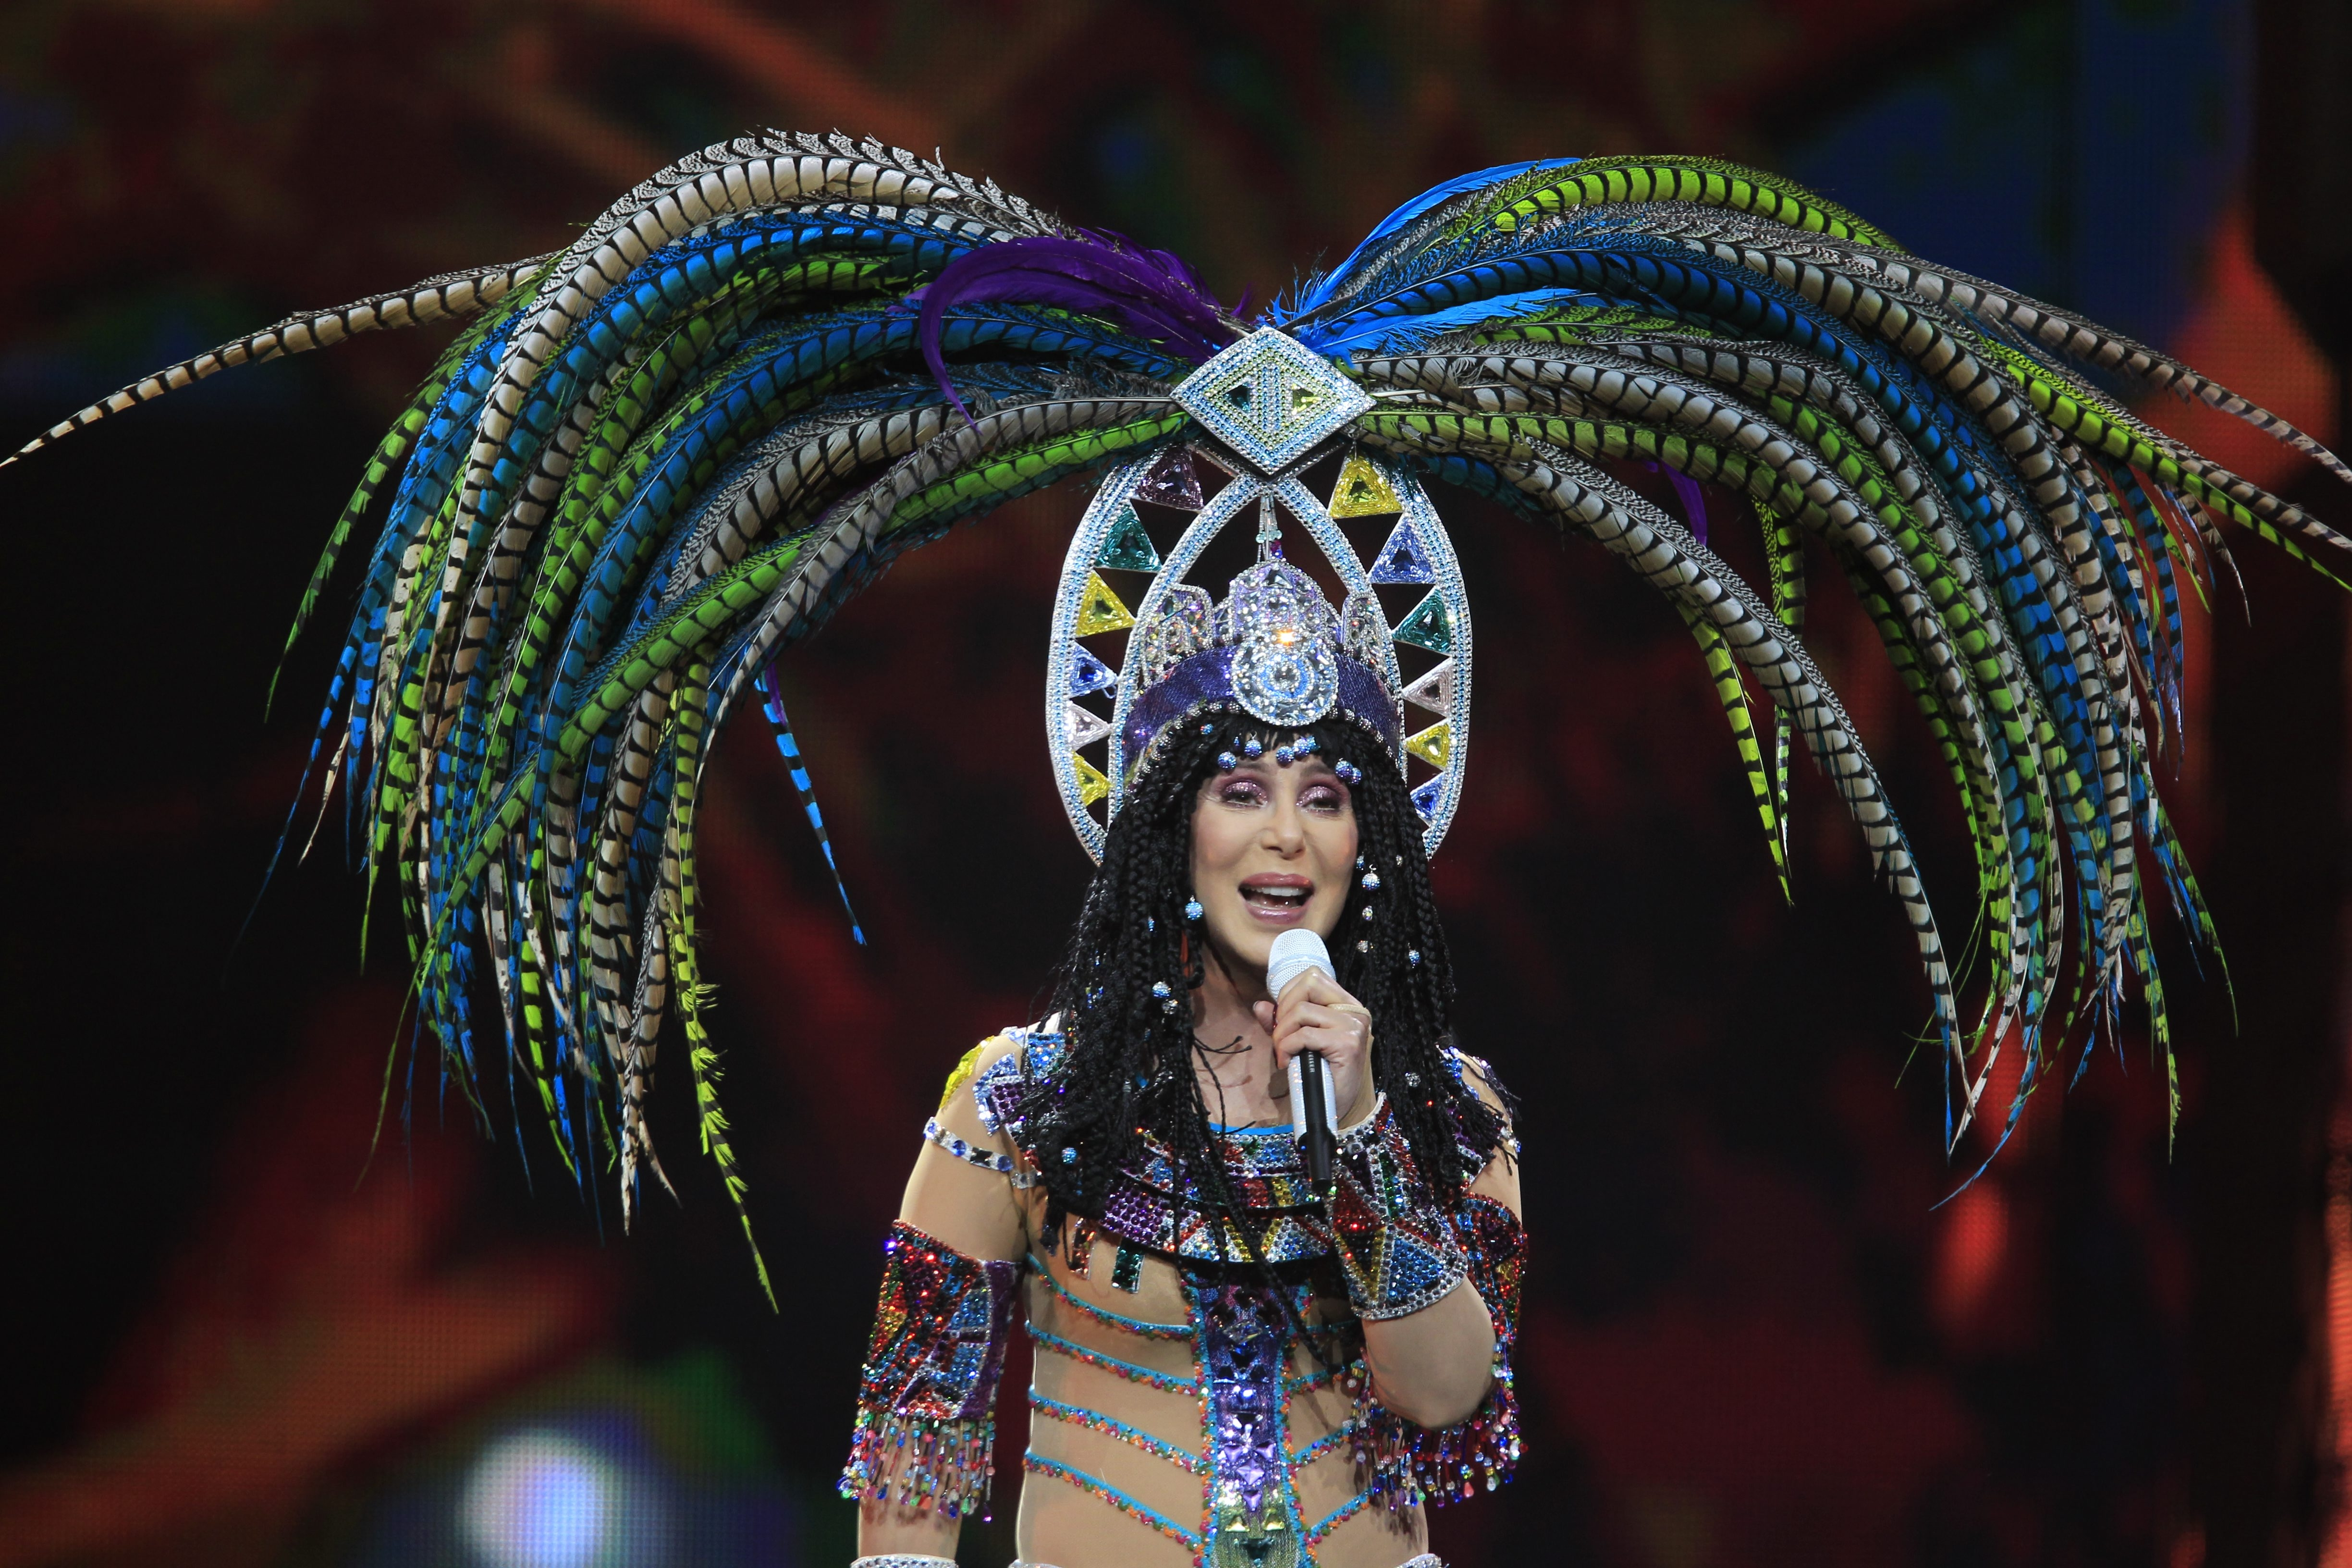 Cher performs on the D2K Tour at the First Niagara Center in Buffalo,NY on, Wednesday, April 23, 2014.